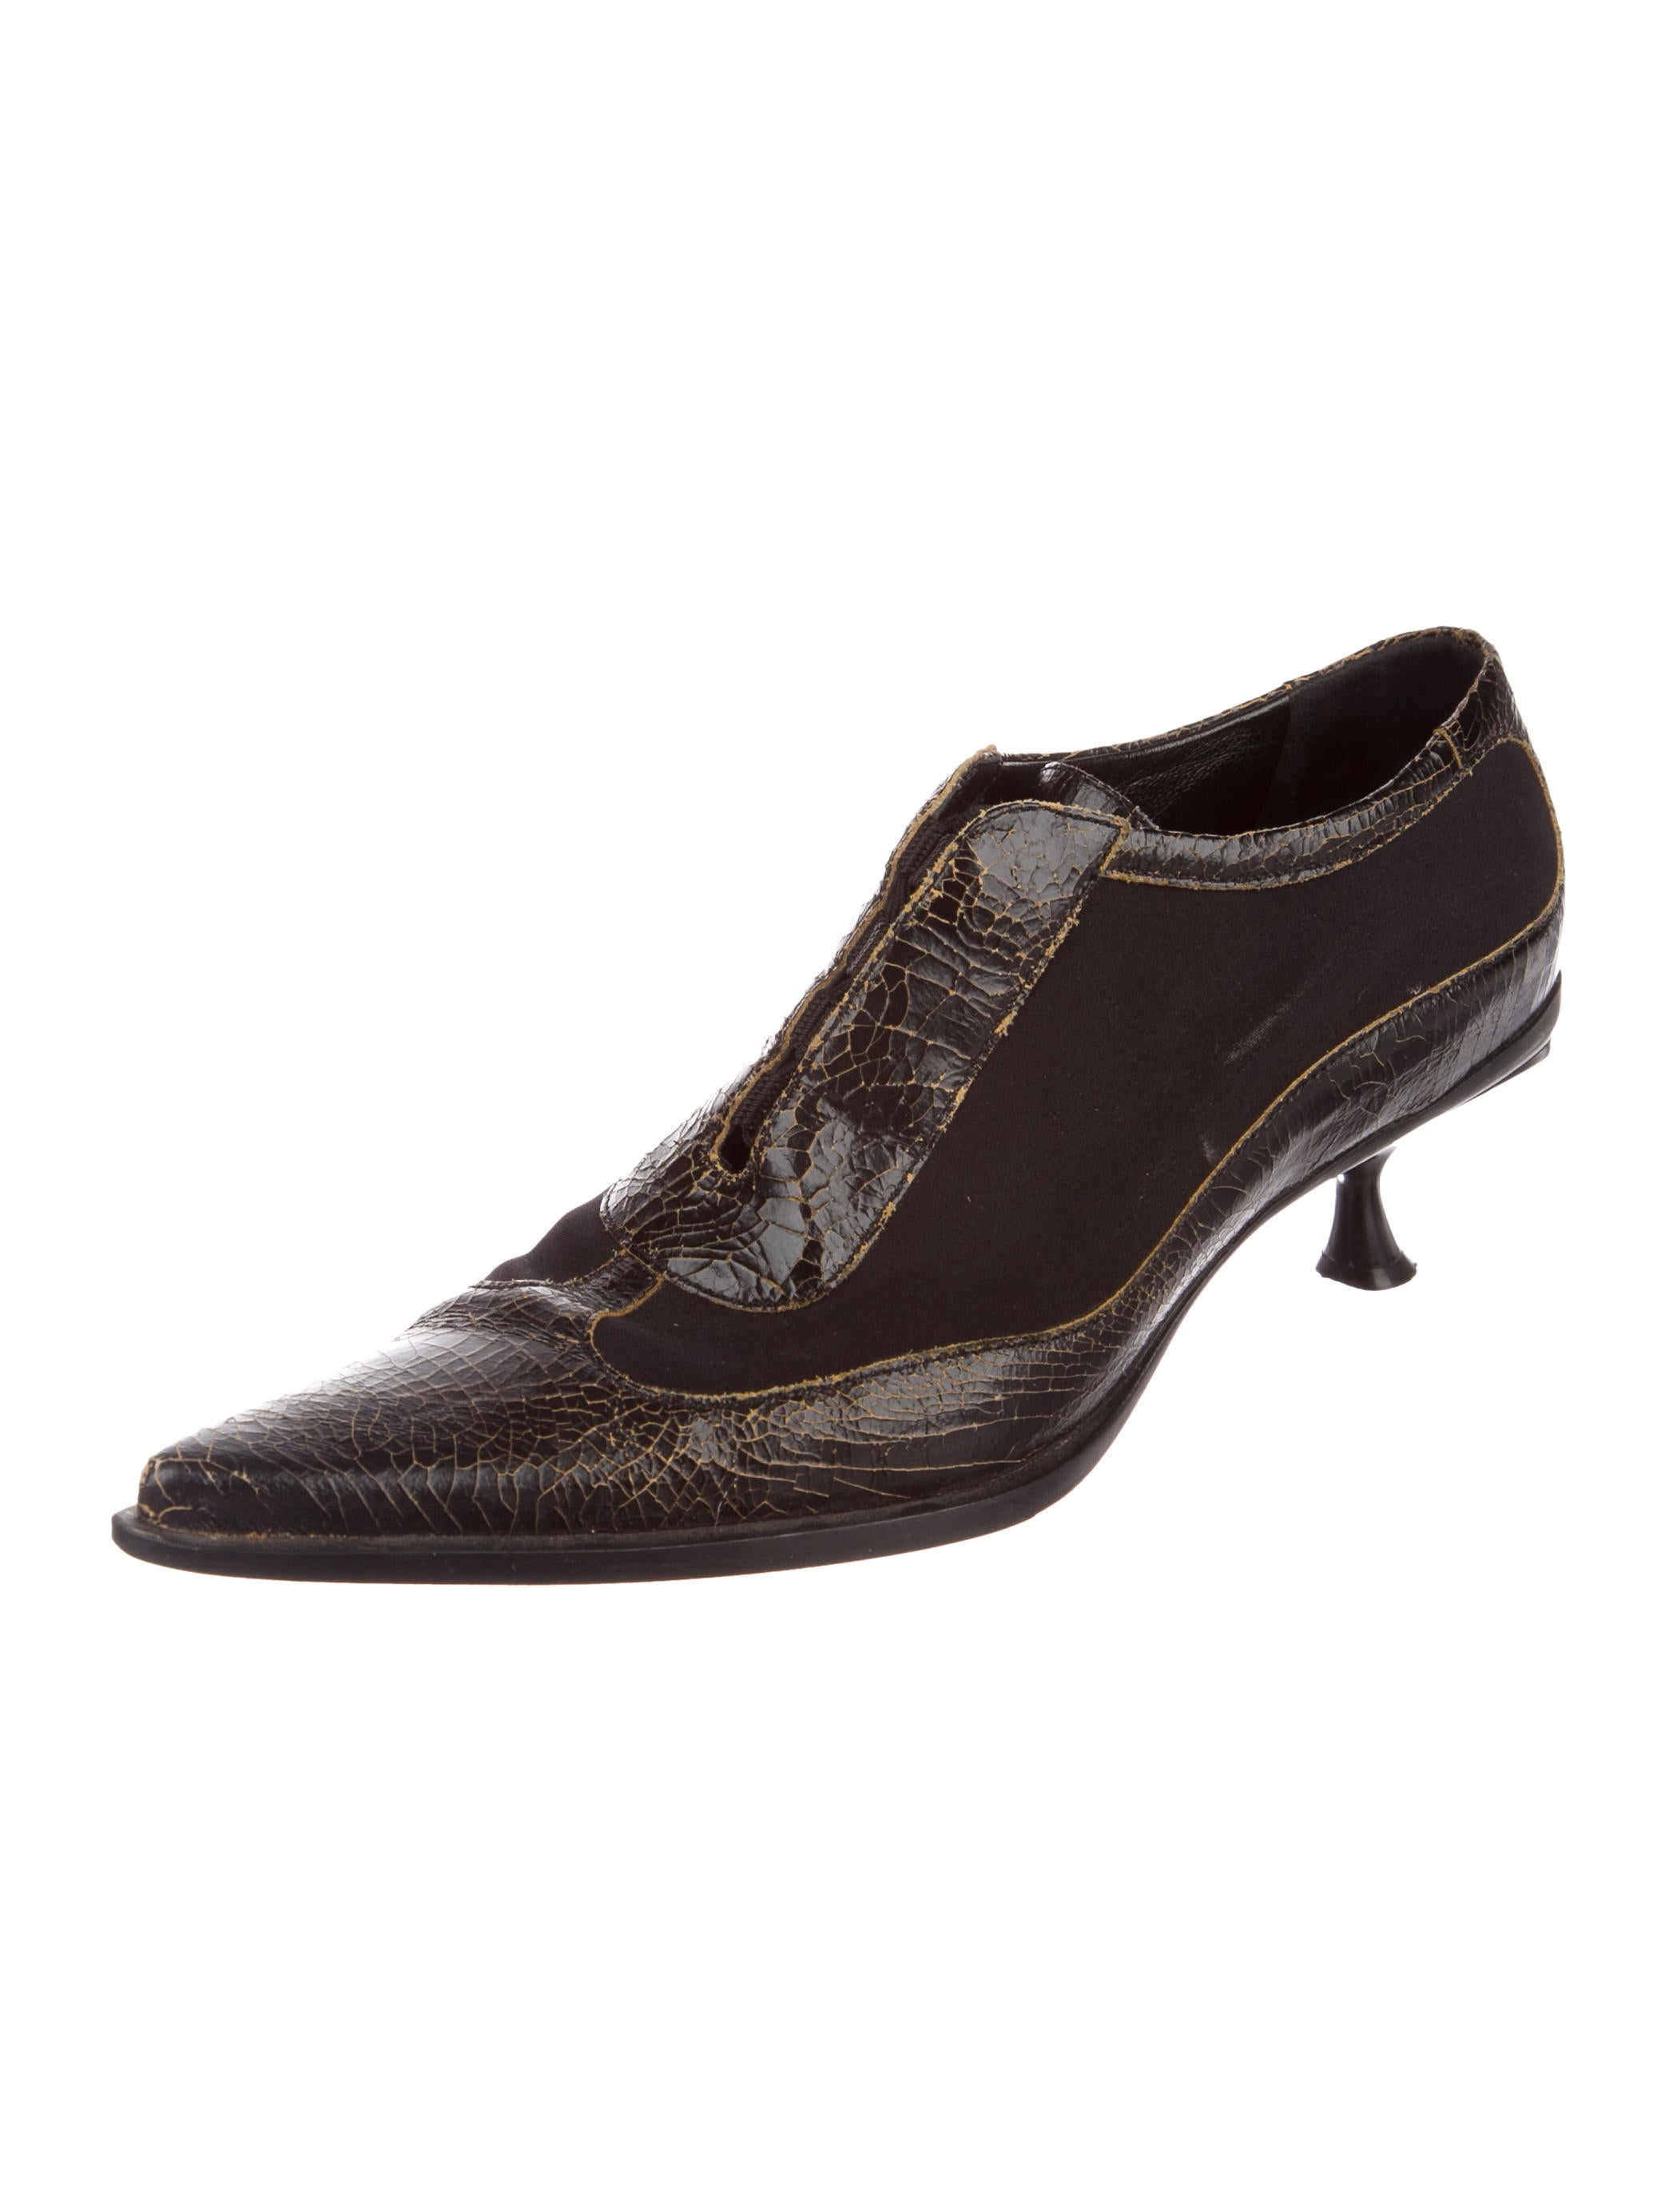 Miu Miu Cracked Leather Oxfords quality outlet store discount best place low price fee shipping sale online with paypal low price cheap sale very cheap DajTV